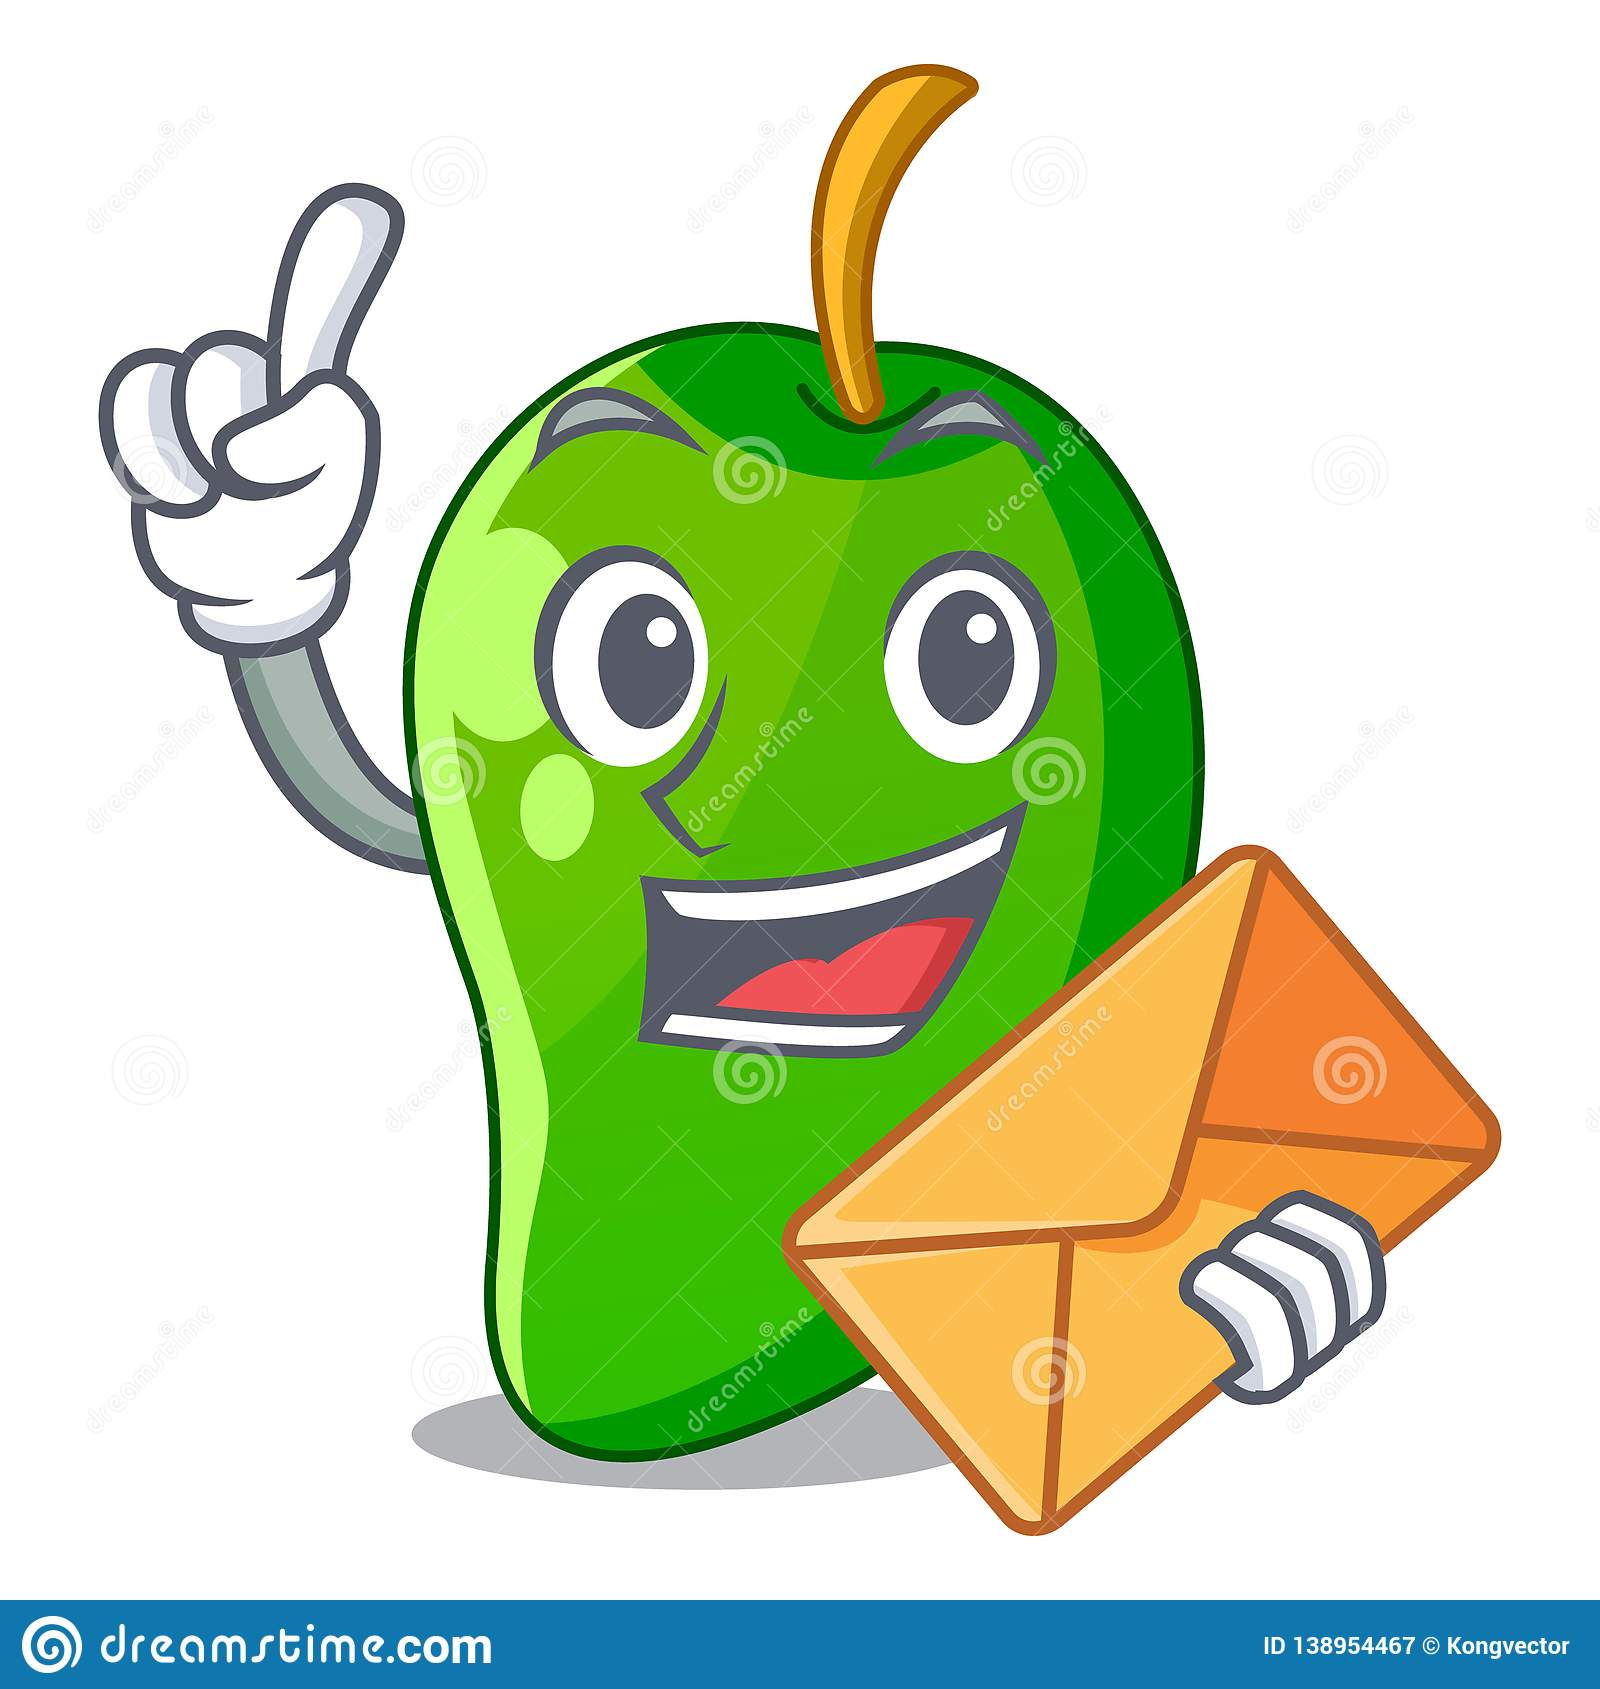 With envelope green mango slices in the character